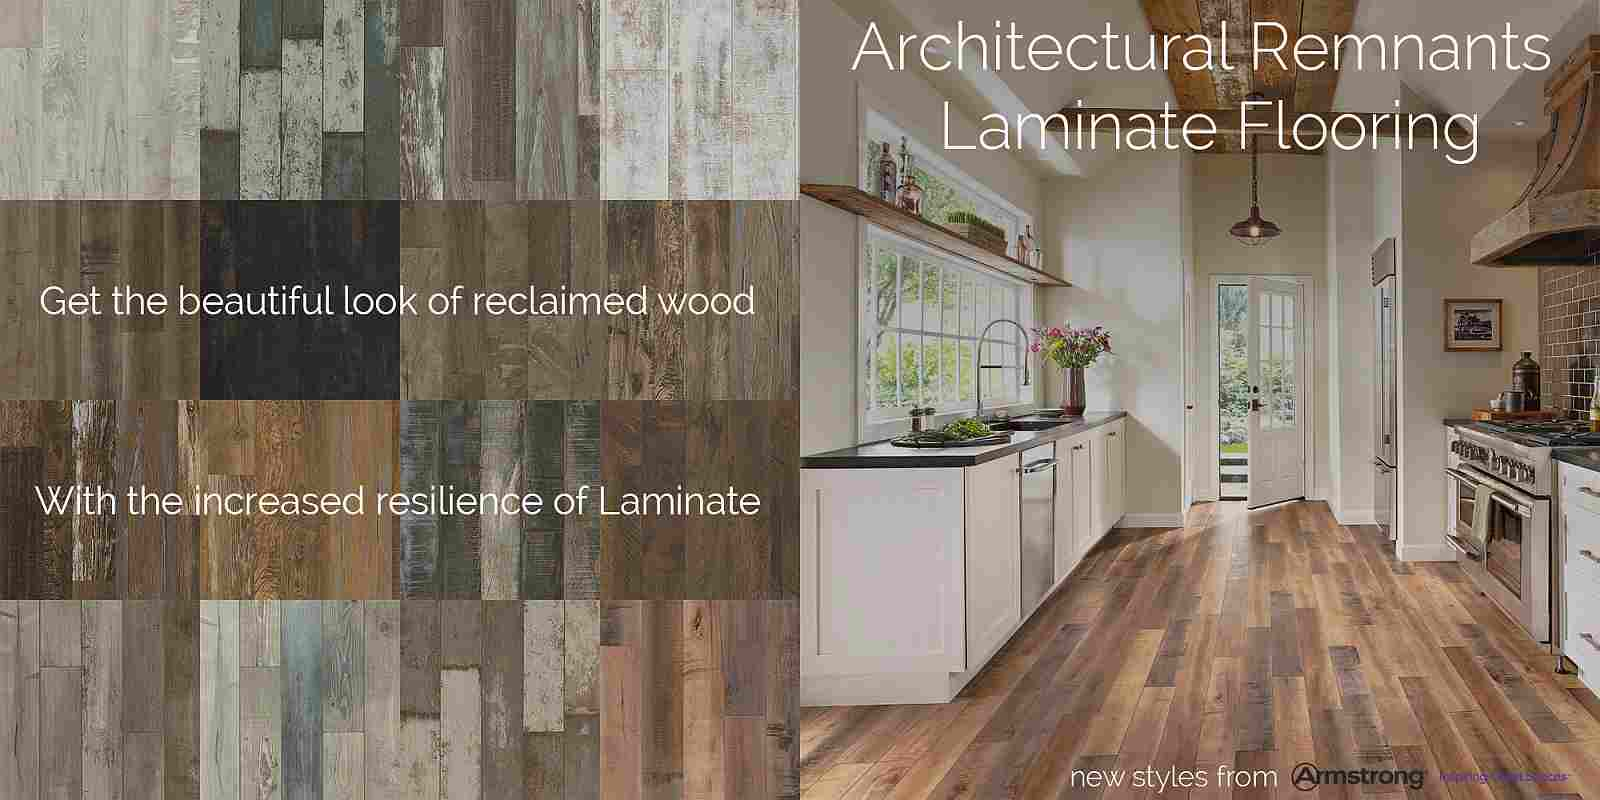 Dupont Laminate Flooring monarch walnut 10 mm thick x 7 916 in wide x 50 Shop The Most Beautiful Reclaimed Wood Looks On Laminate Floors Today